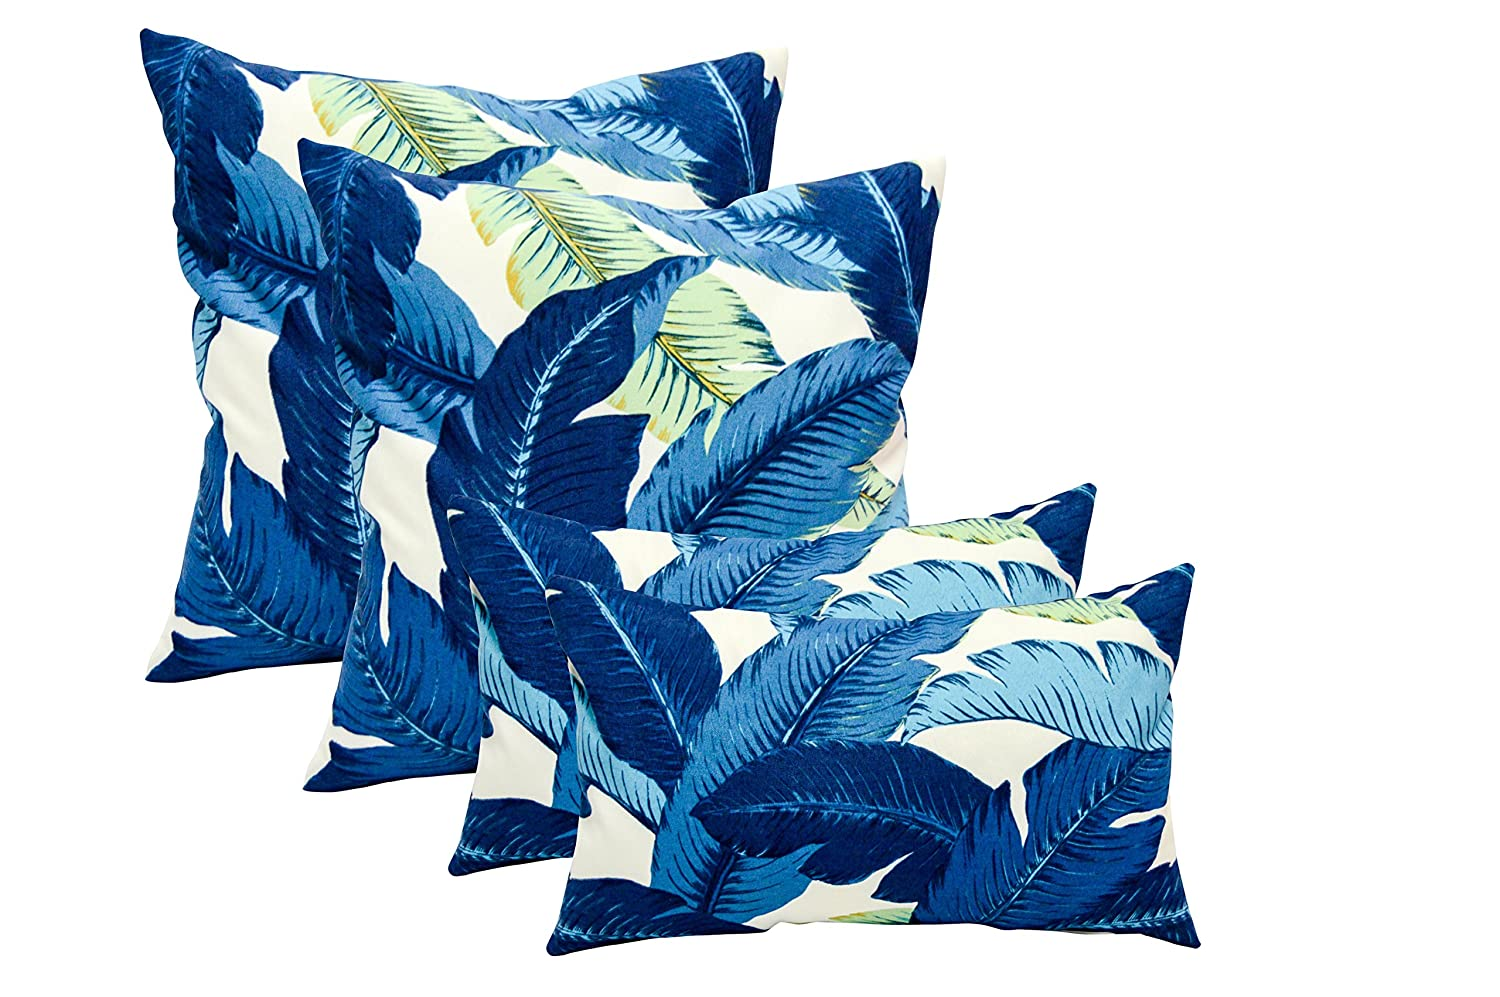 RSH DECOR Set of 4 Indoor Outdoor Pillows – 17 Square Throw Pillows Rectangle Lumbar Decorative Throw Pillows – Made with Tommy Bahama Swaying Palms – Escape Blue Fabric